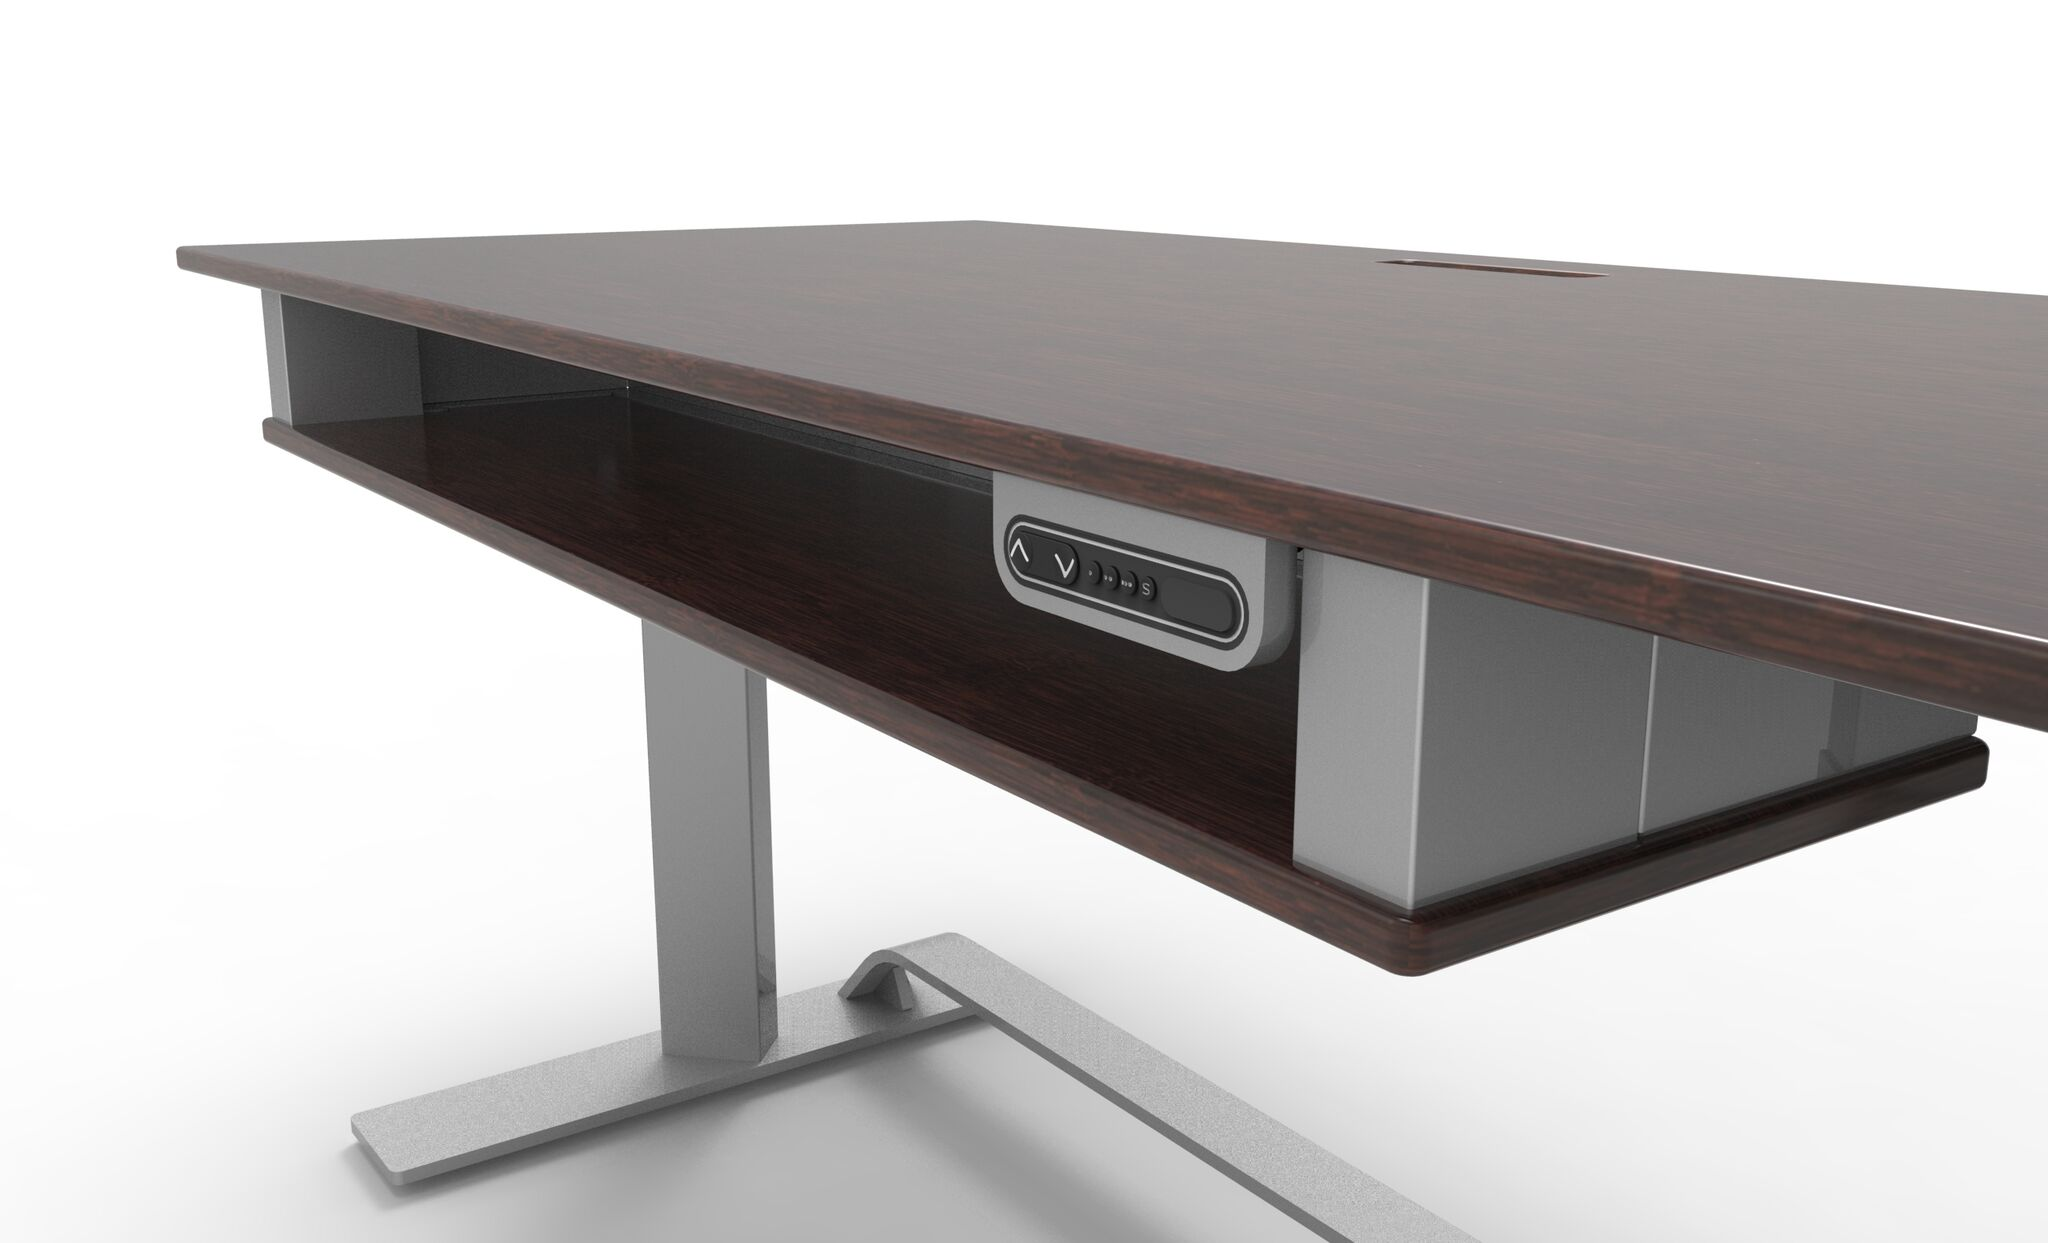 foot furniture birdseye base desk steel stainless maple with conference grommets boardroom table custom